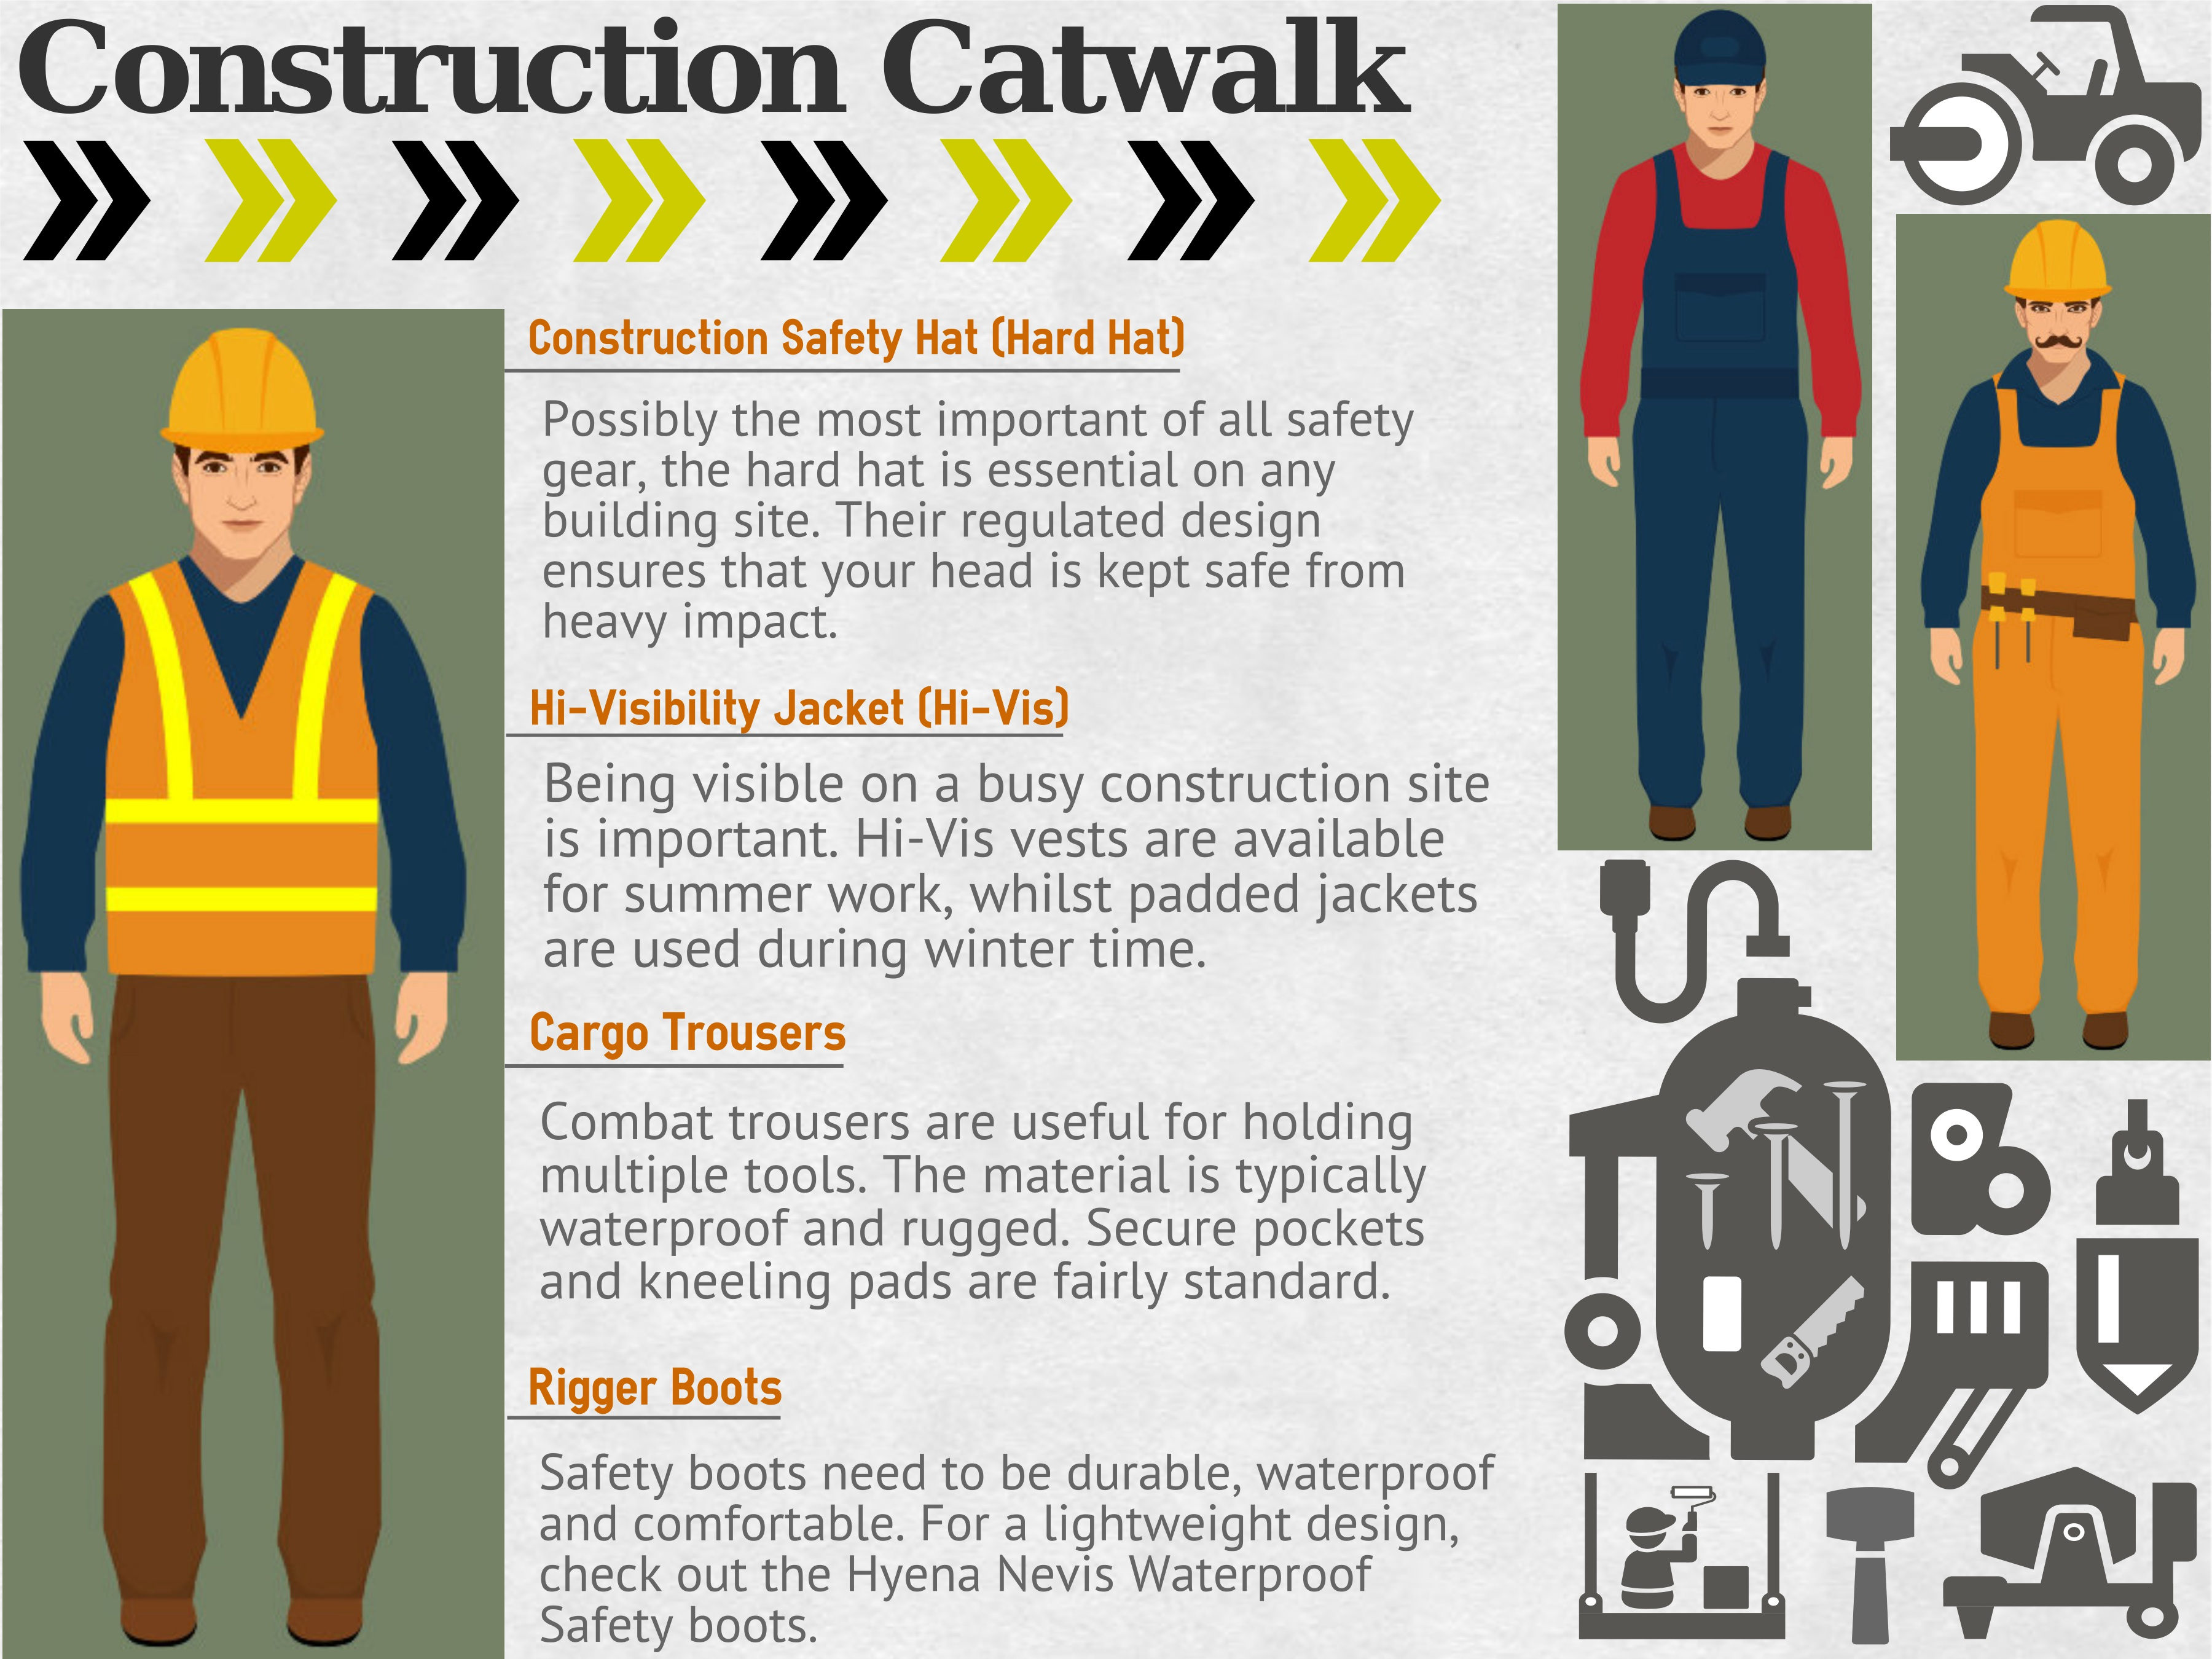 So You Want To Work In Construction